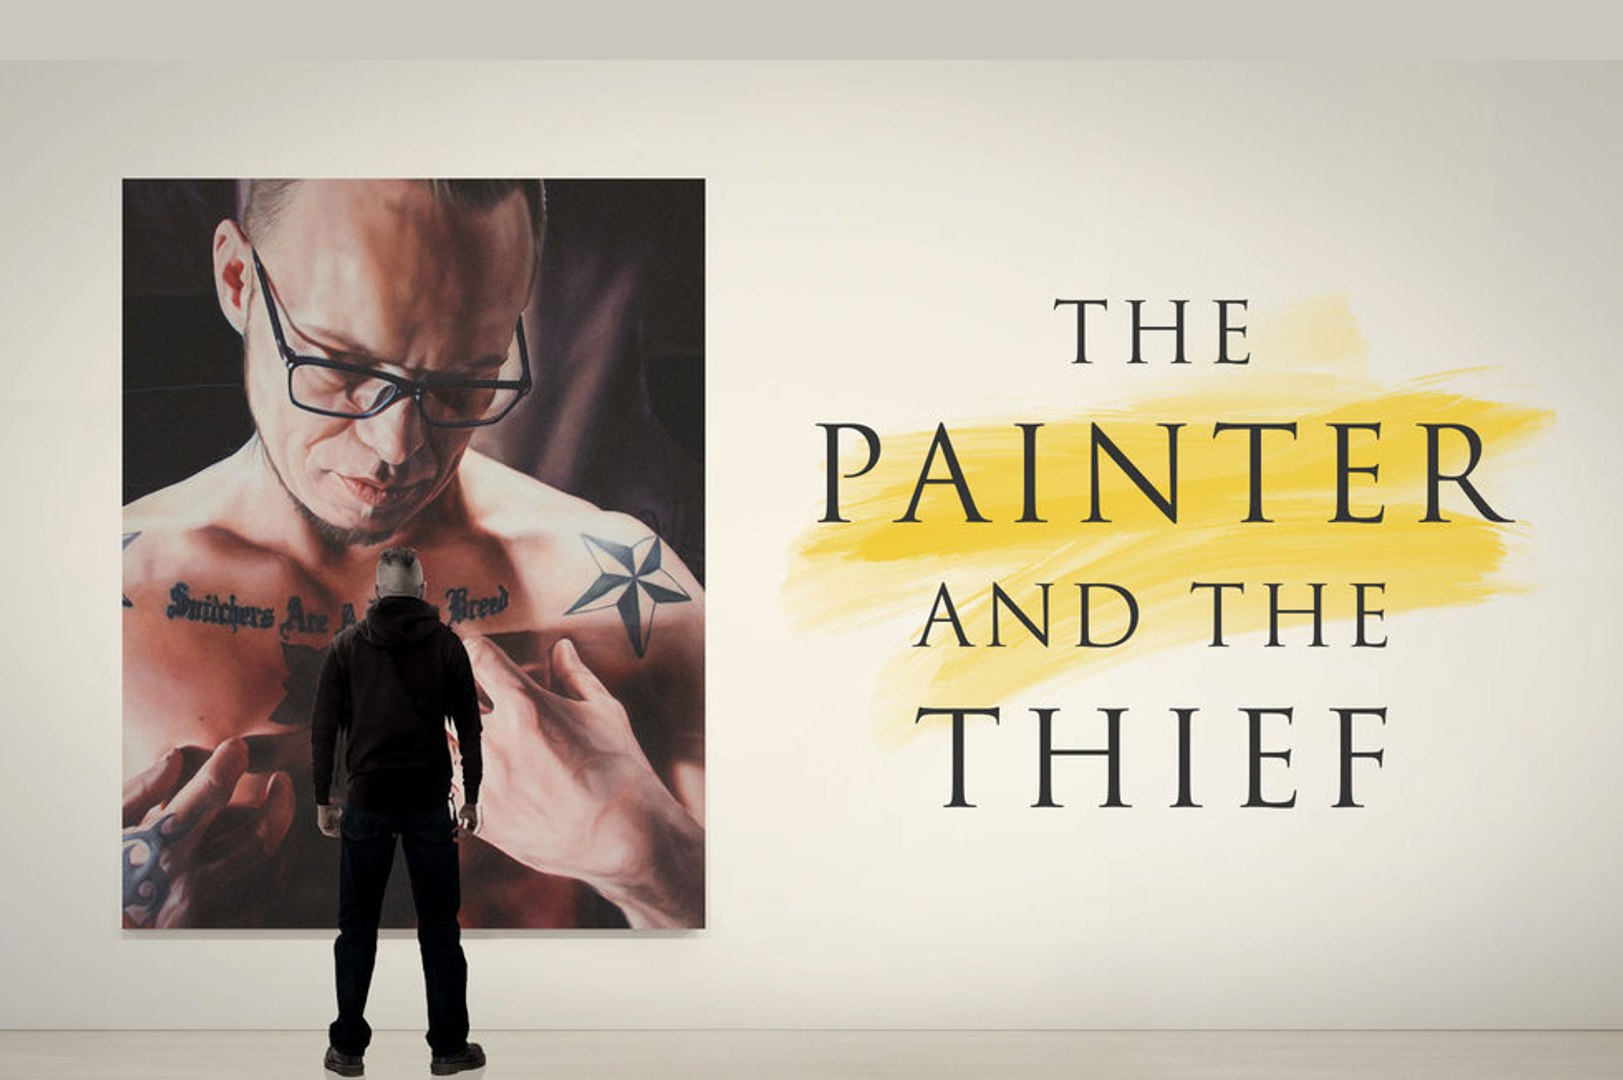 The Painter and the Thief (2020) Subtitle (English Srt) Download